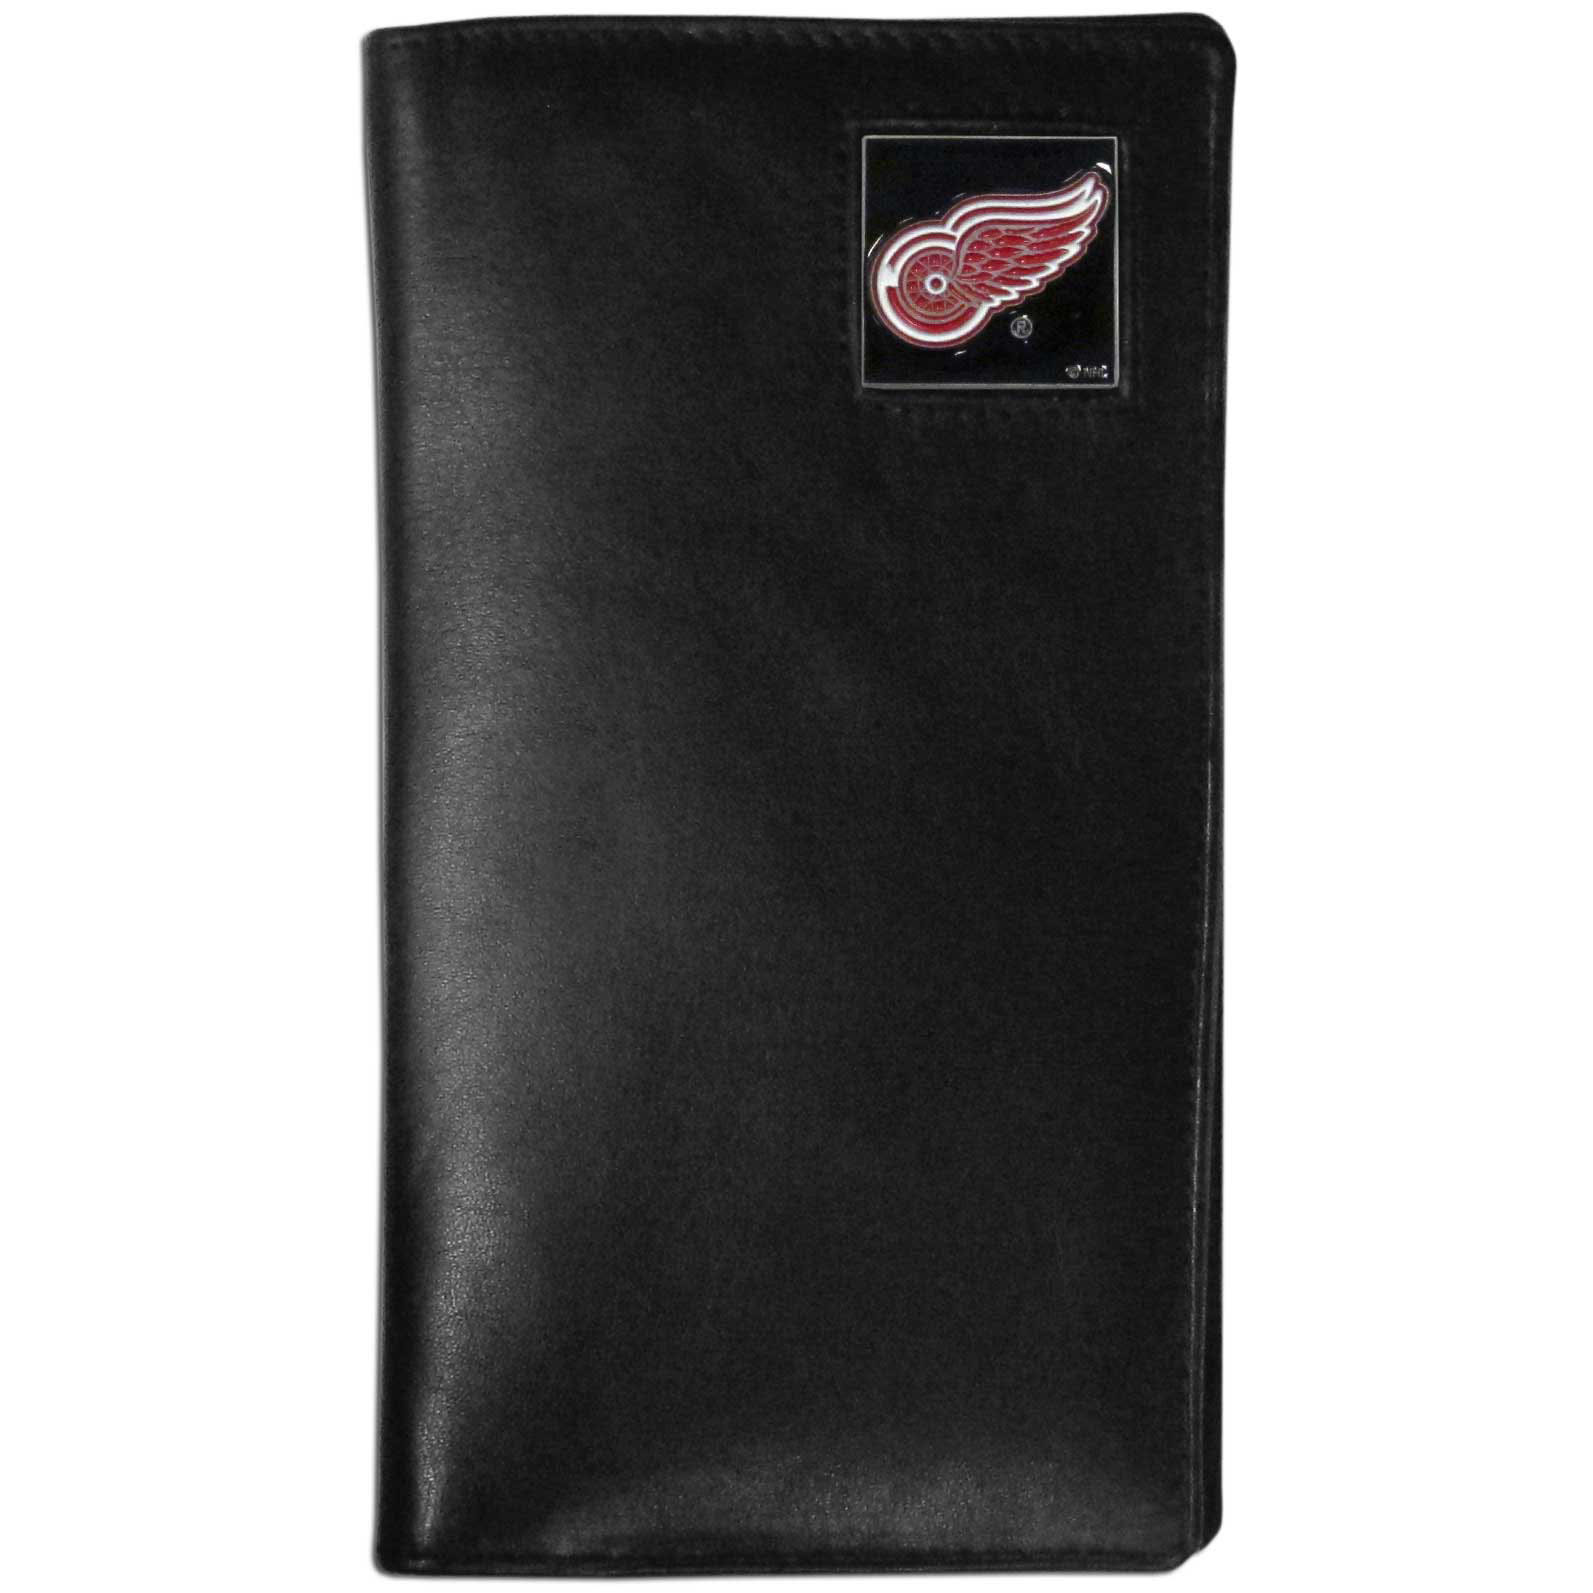 Detroit Red Wings Tall Leather Wallet - This officially licensed tall leather wallet cover is made of high quality leather with a fully cast metal Detroit Red Wings emblem with enameled Detroit Red Wings color detail. The cover fits both side and top loaded checks and includes a large zippered pocket, windowed ID slot, numerous credit card slots and billfold pocket. Thank you for visiting CrazedOutSports